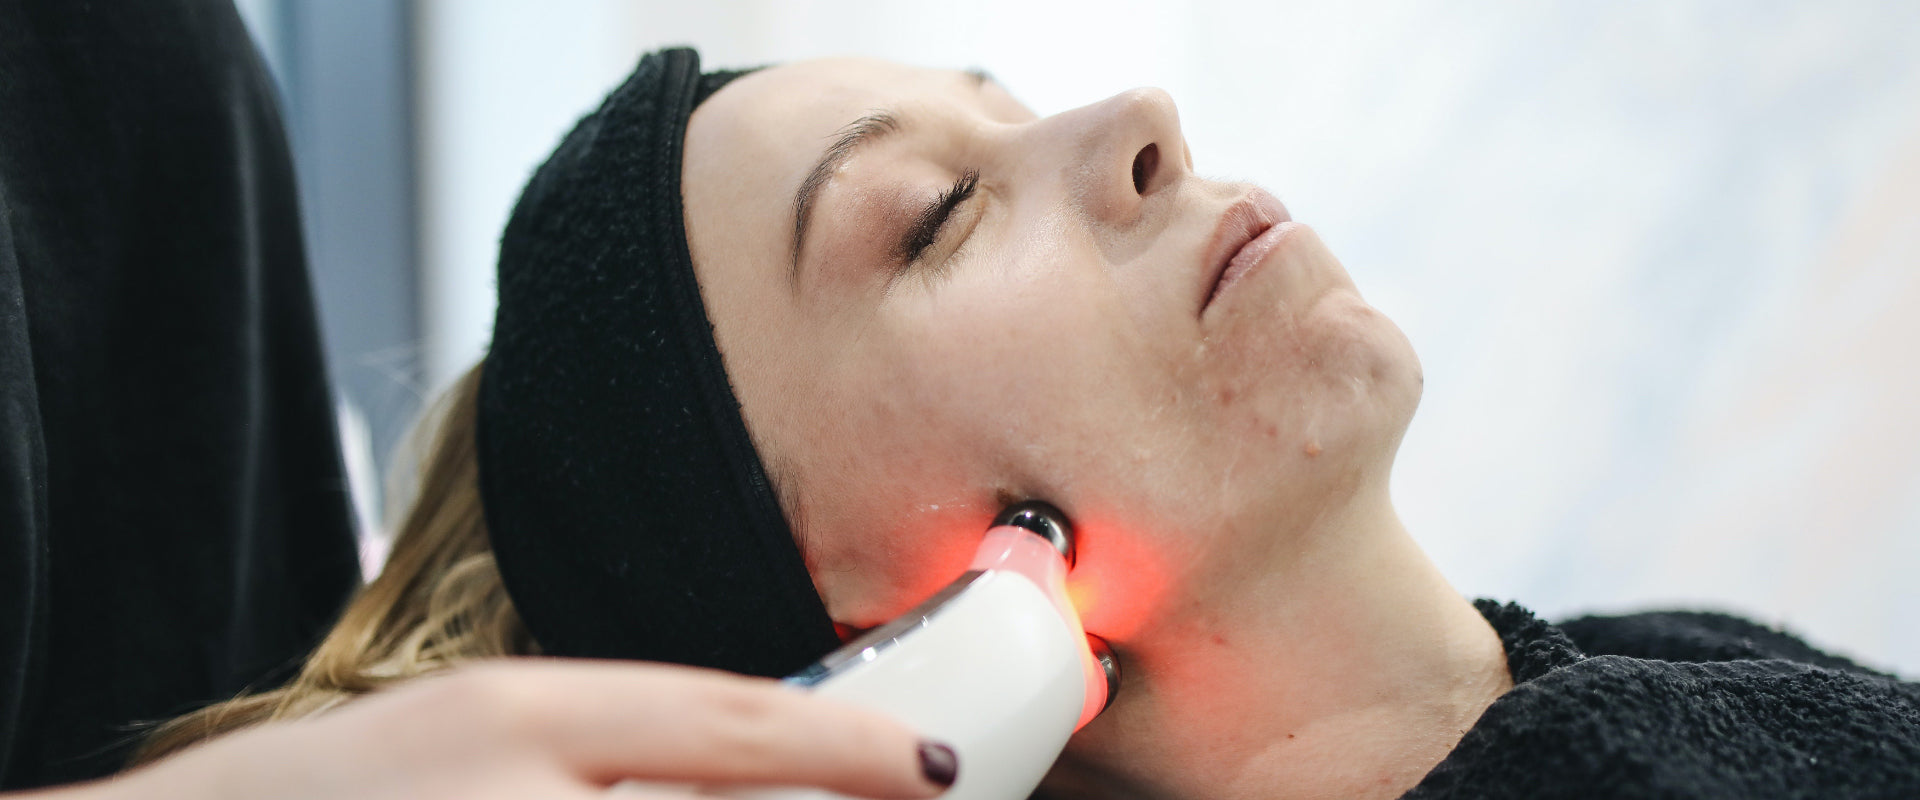 LED Light Therapy Can Transform Your Skin